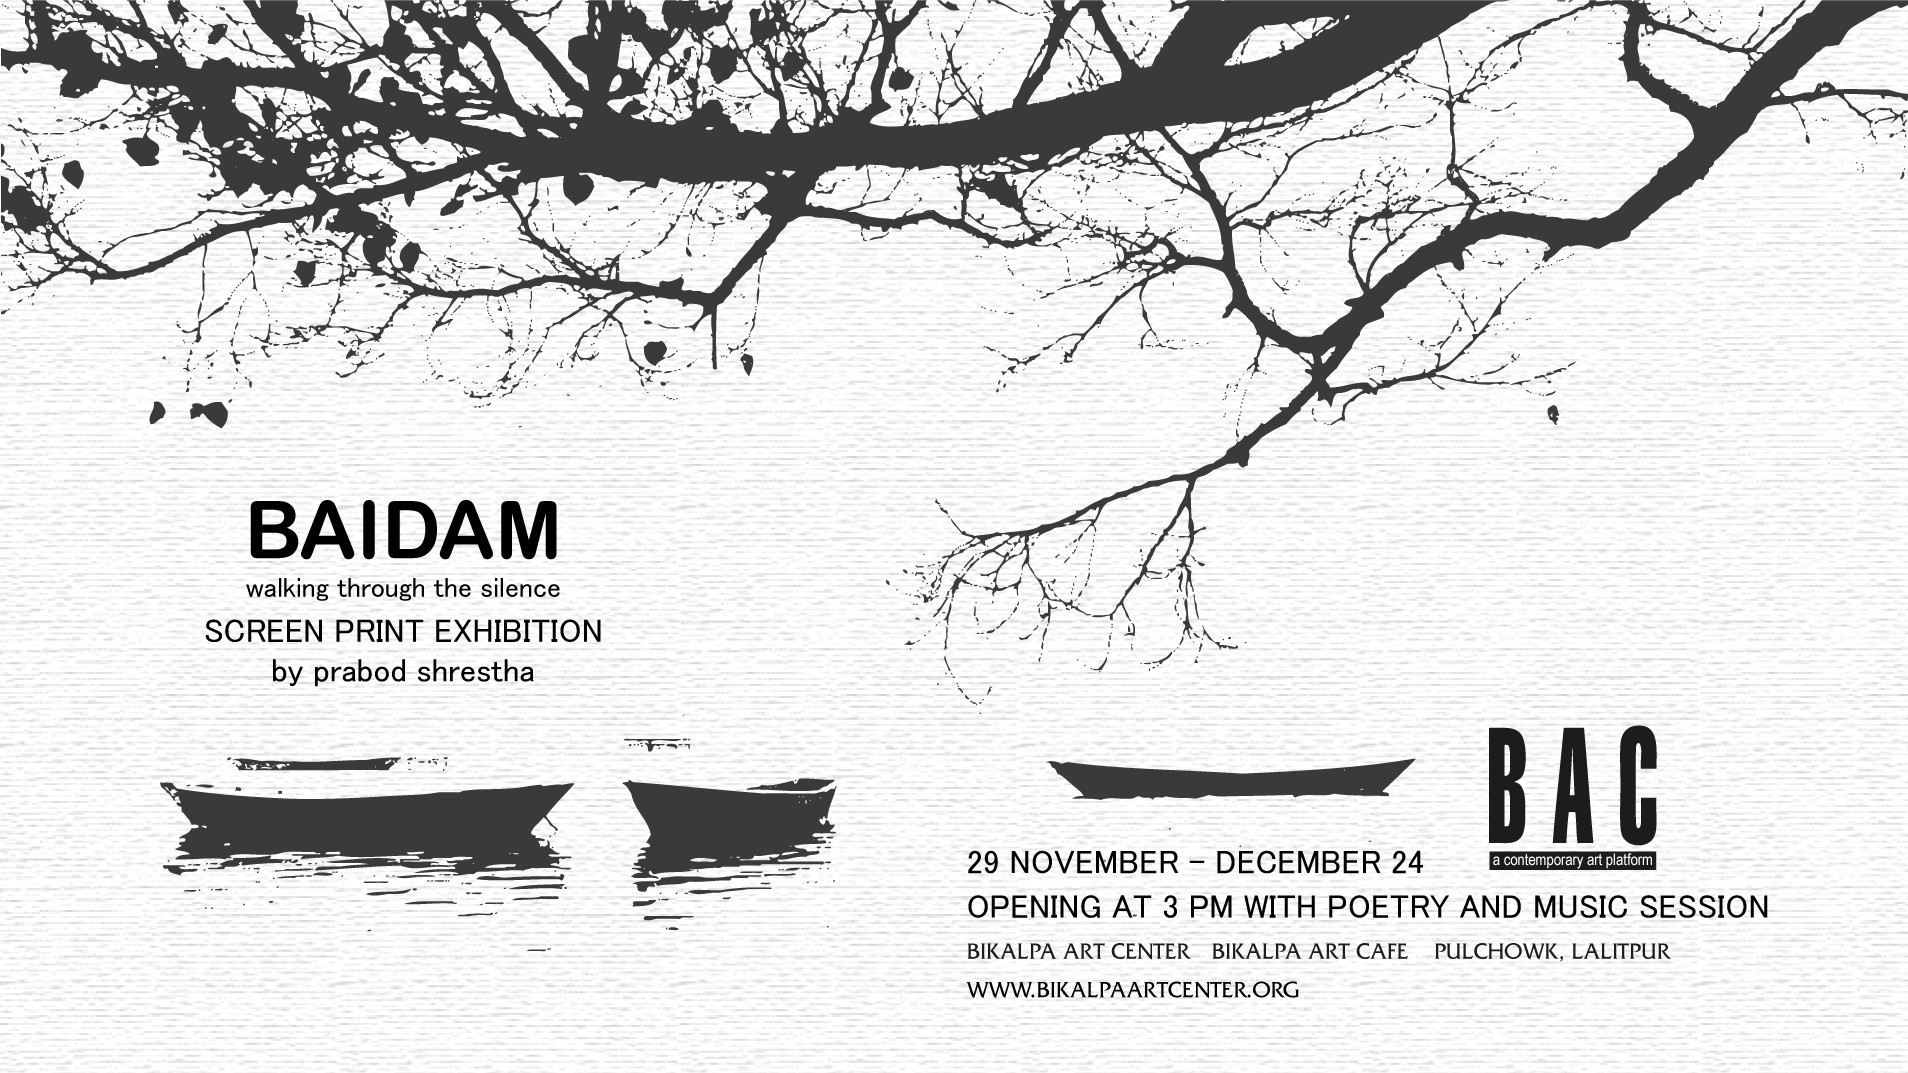 Baidam, walking through silence screen print exhibition